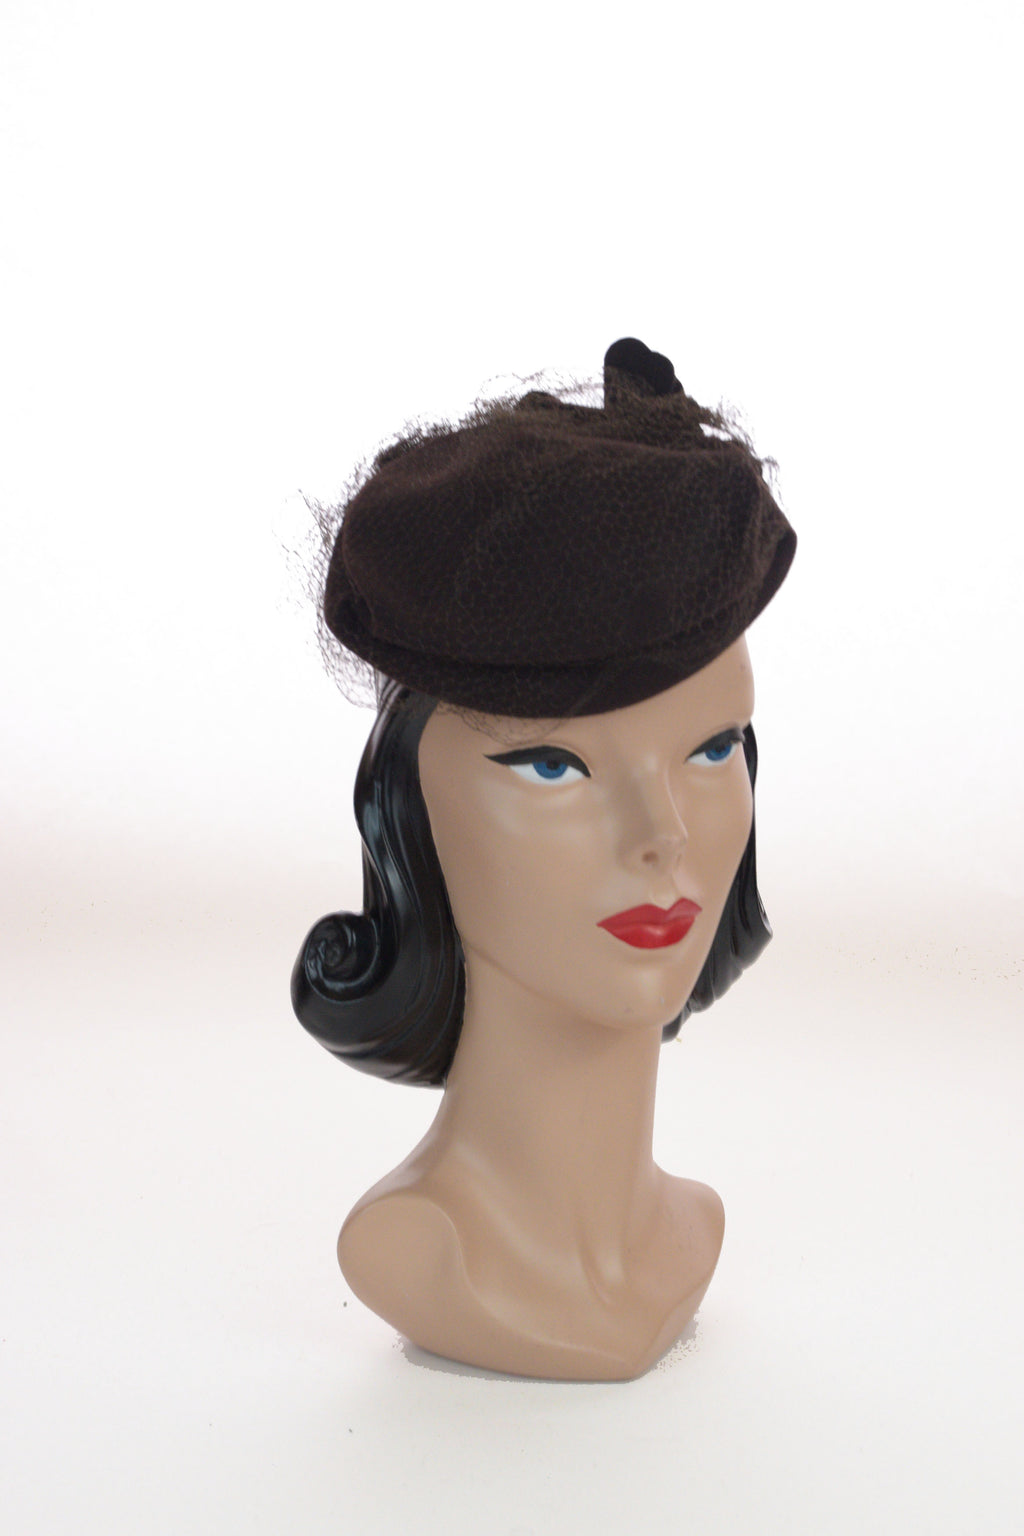 Darling 1940s Brown Felt Tilt Hat with Pressed Felt Flowers, a New York Creation